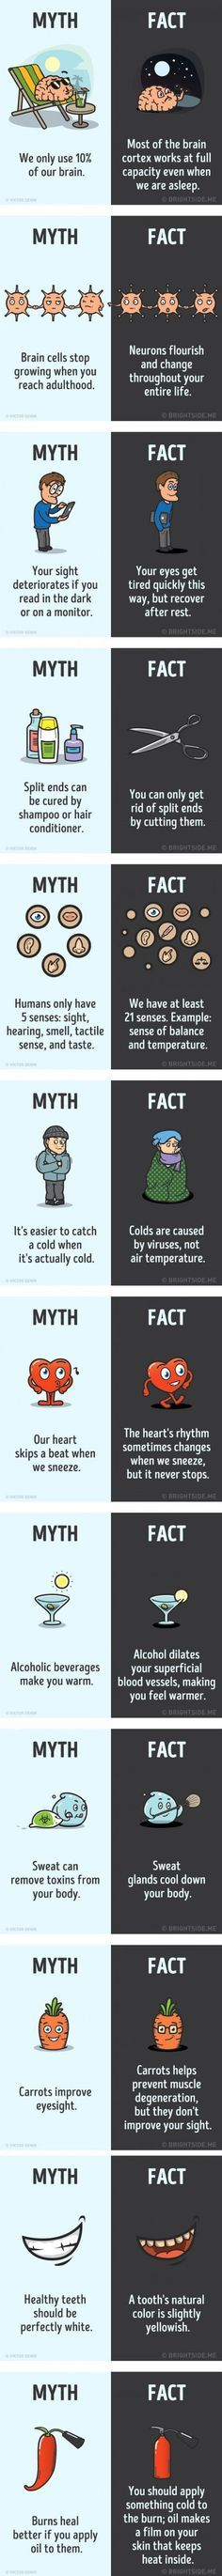 12 myths about the human body that we should forget